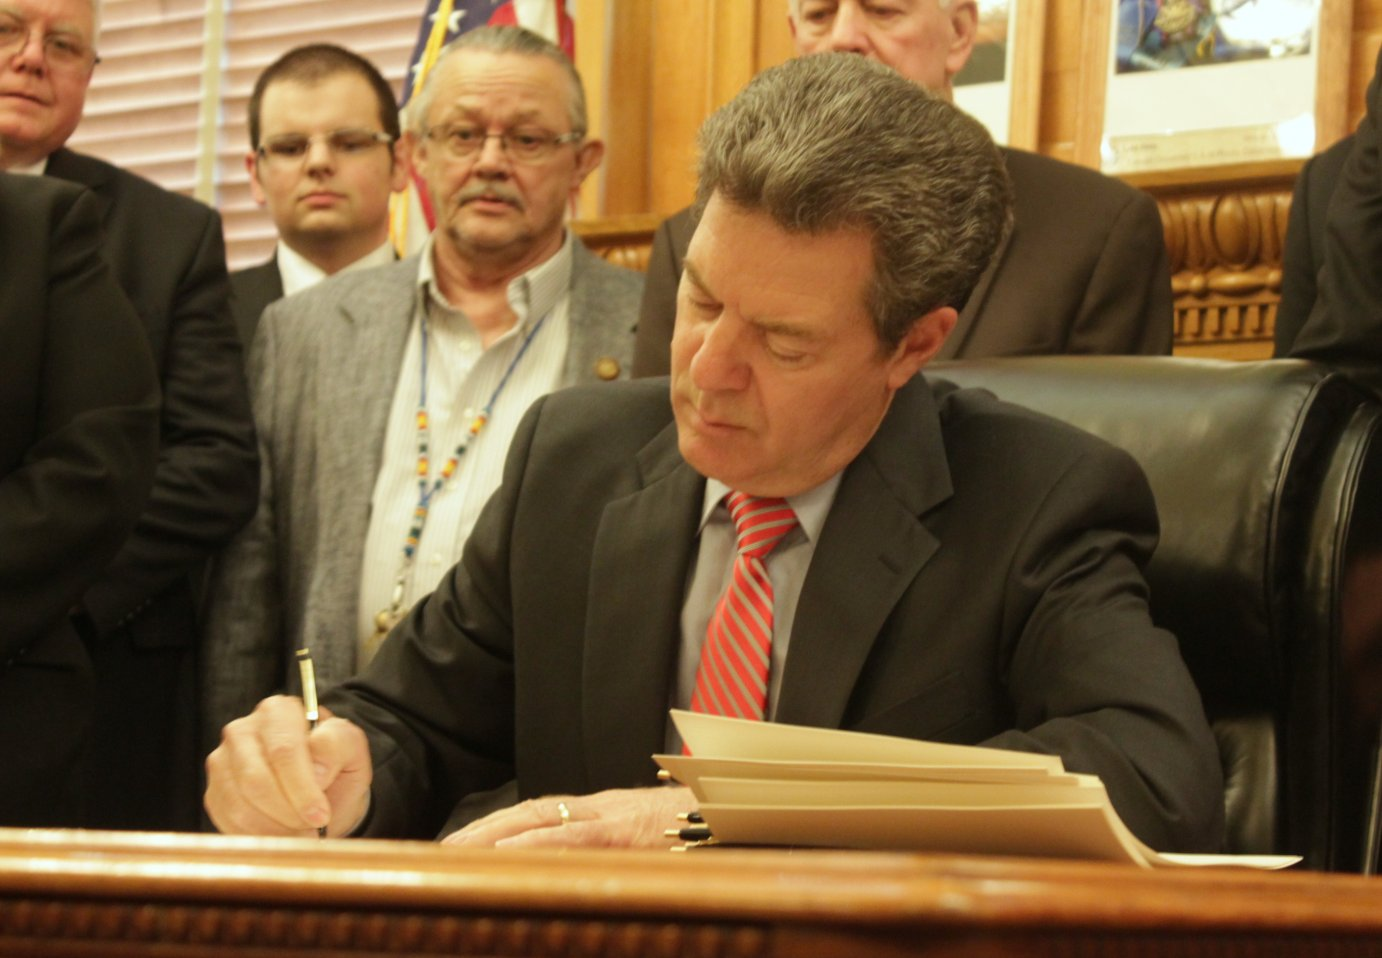 Governor Brownback signing a bill earlier this month. (Photo by Stephen Koranda)